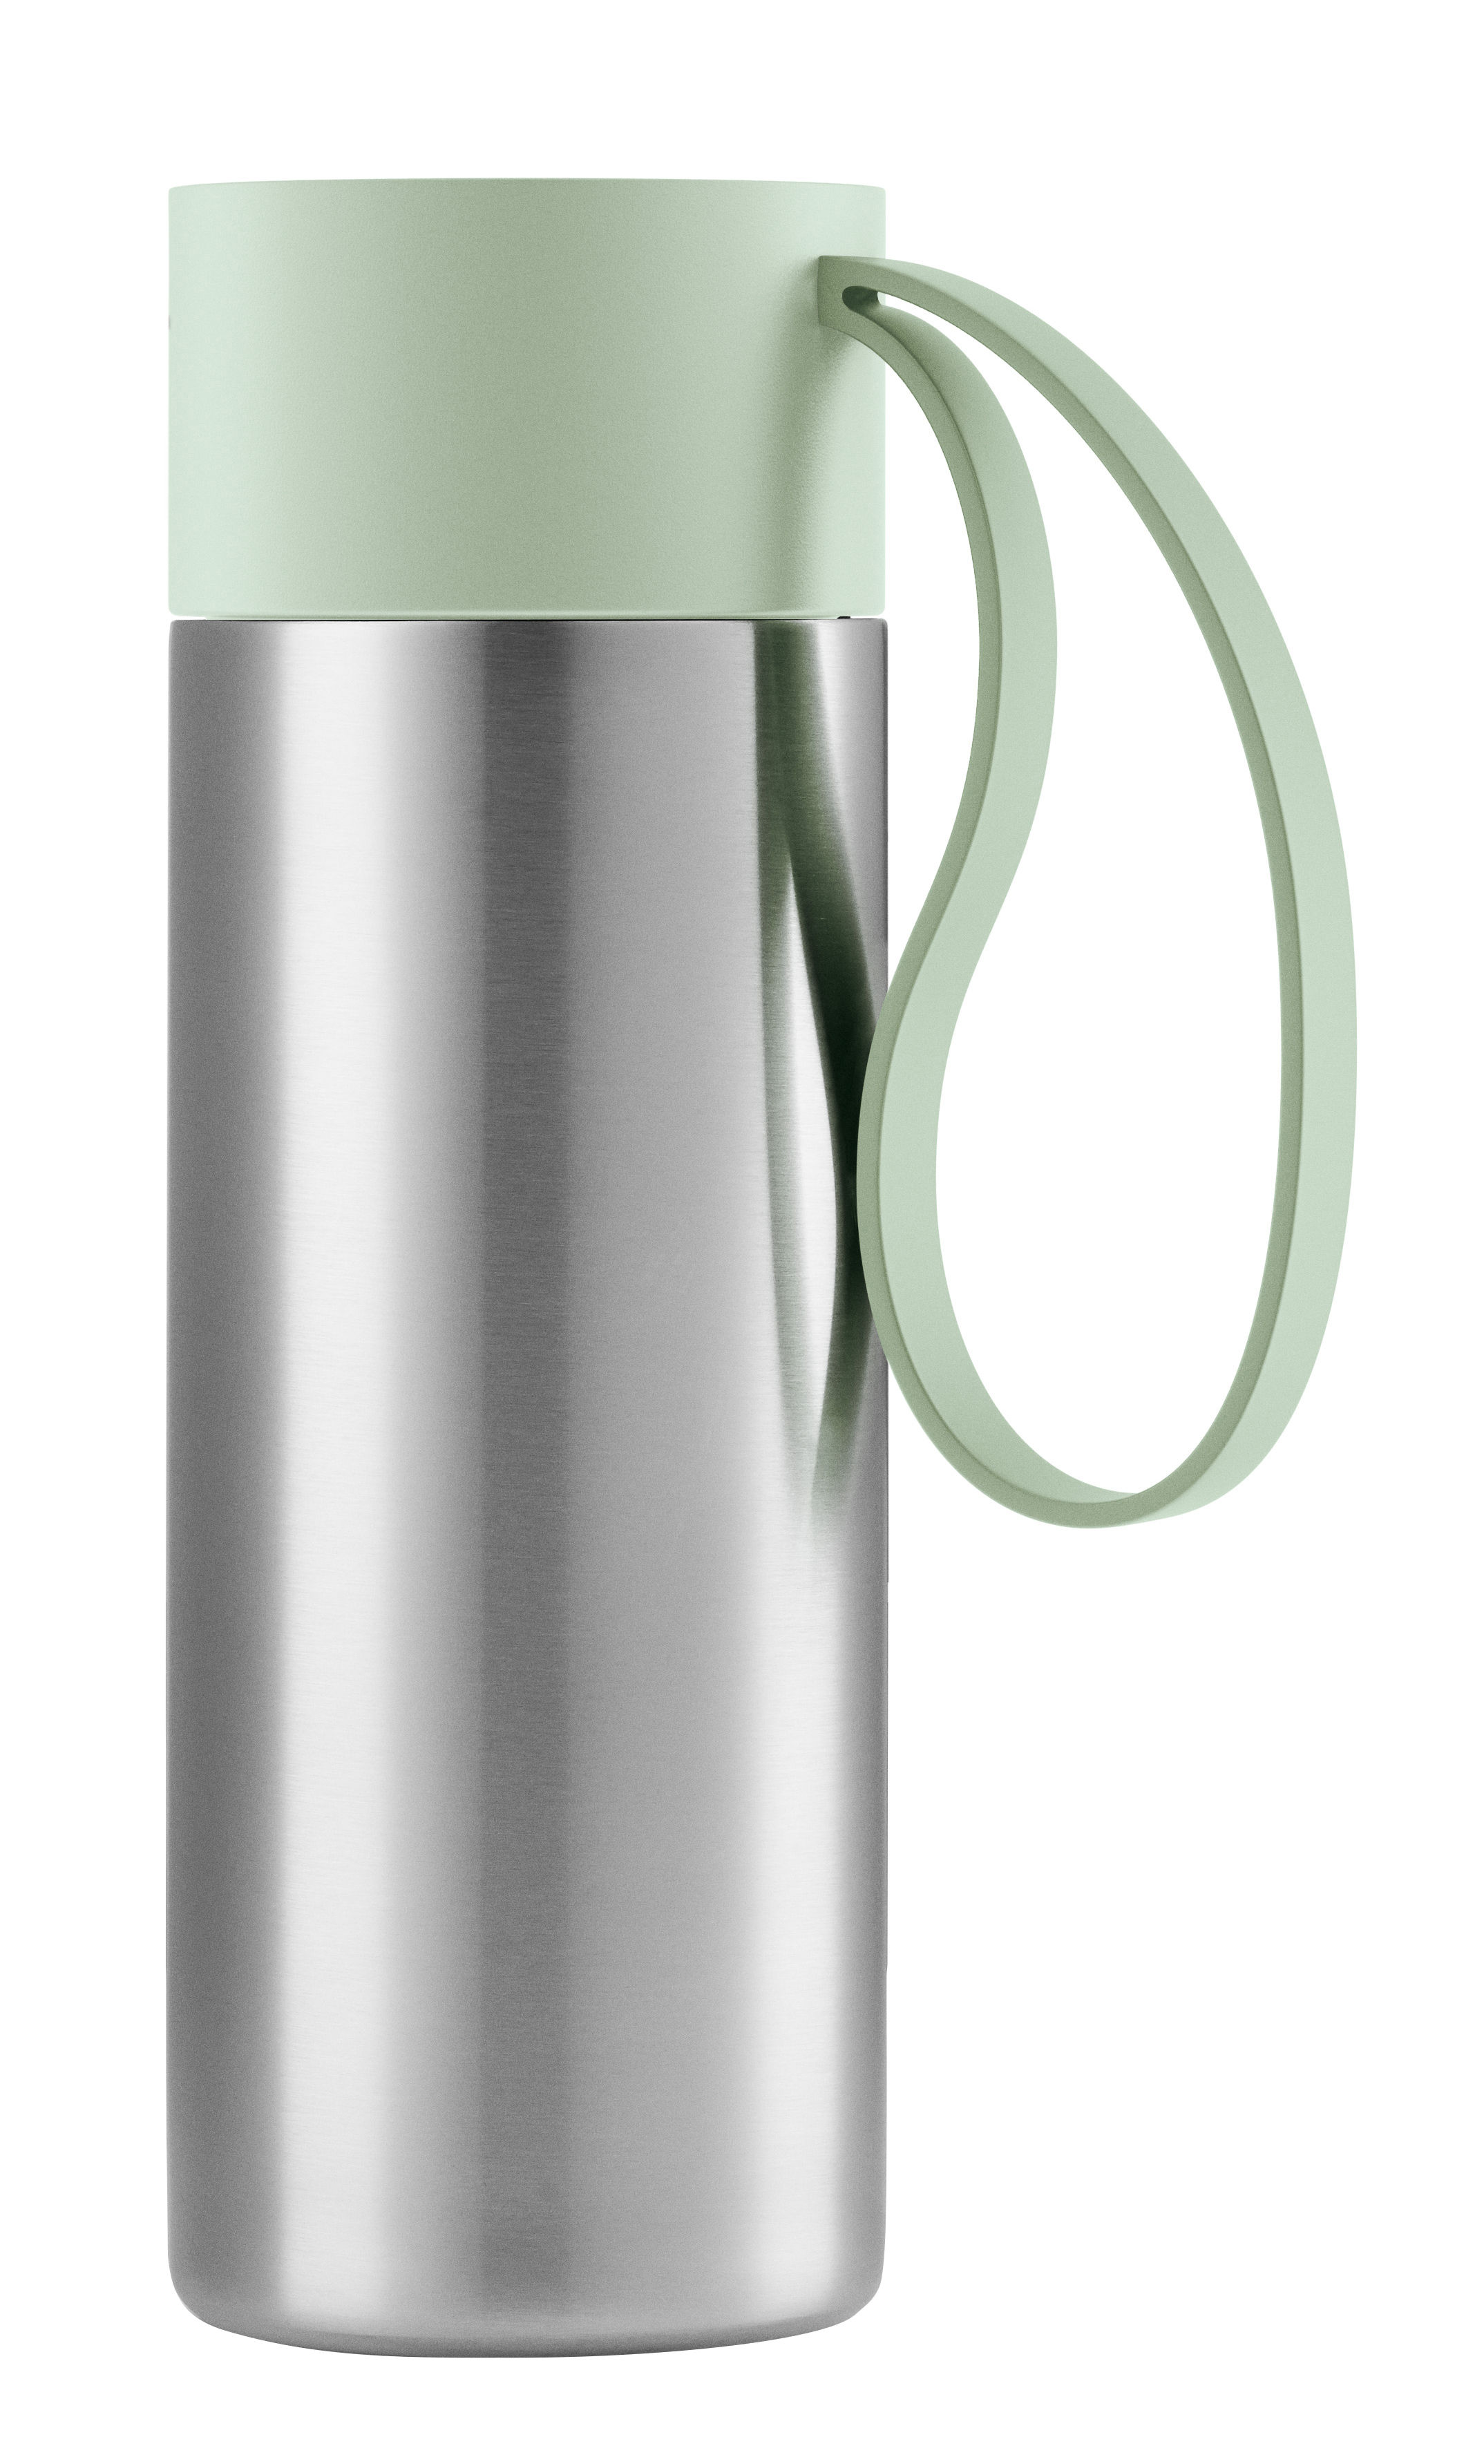 Tableware - Coffee Mugs & Tea Cups - To Go Cup Insulated mug - / With lid - 0.35 L by Eva Solo - Eucalyptus green / Steel - Silicone, Stainless steel